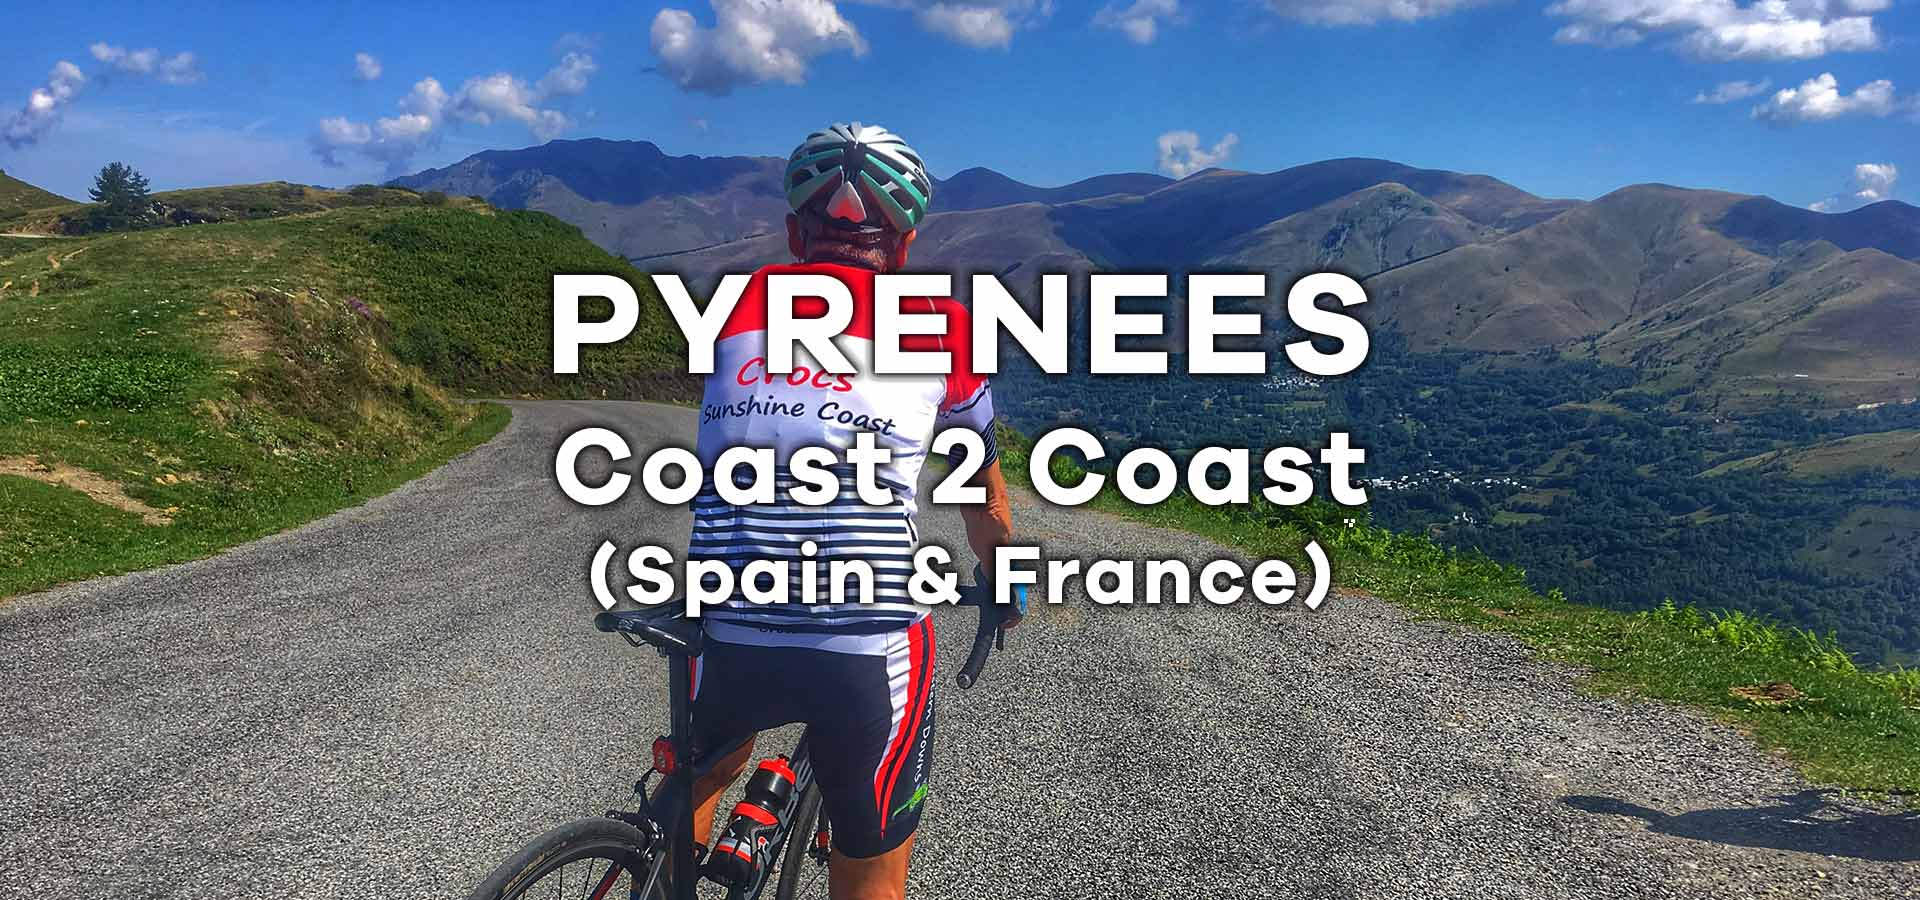 Crossing the Spanish Pyrenees and French Pyrenees by bike